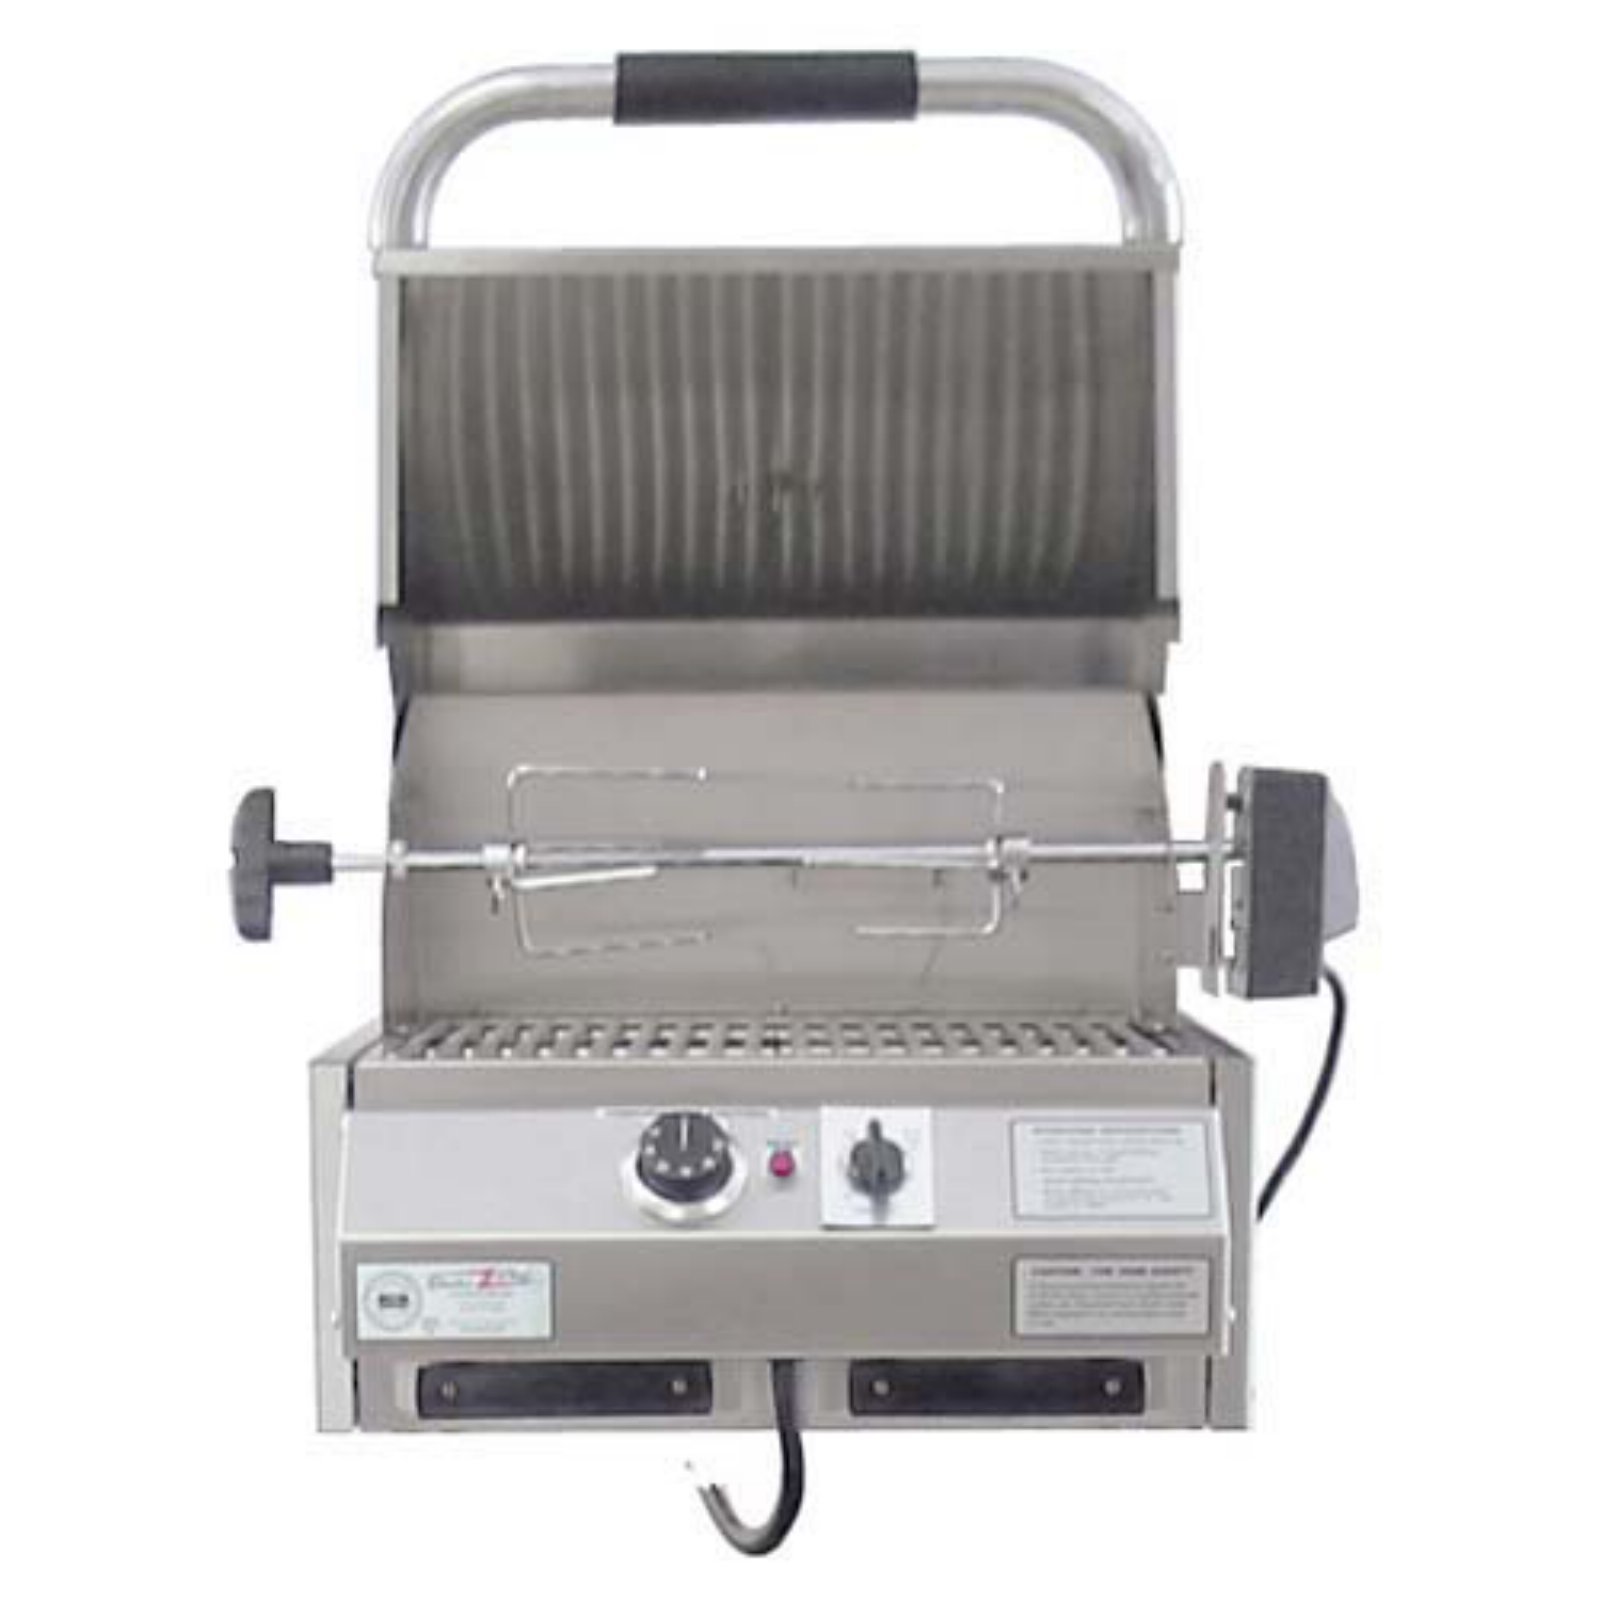 Electri-Chef Island 16 in. Built-In Electric Grill